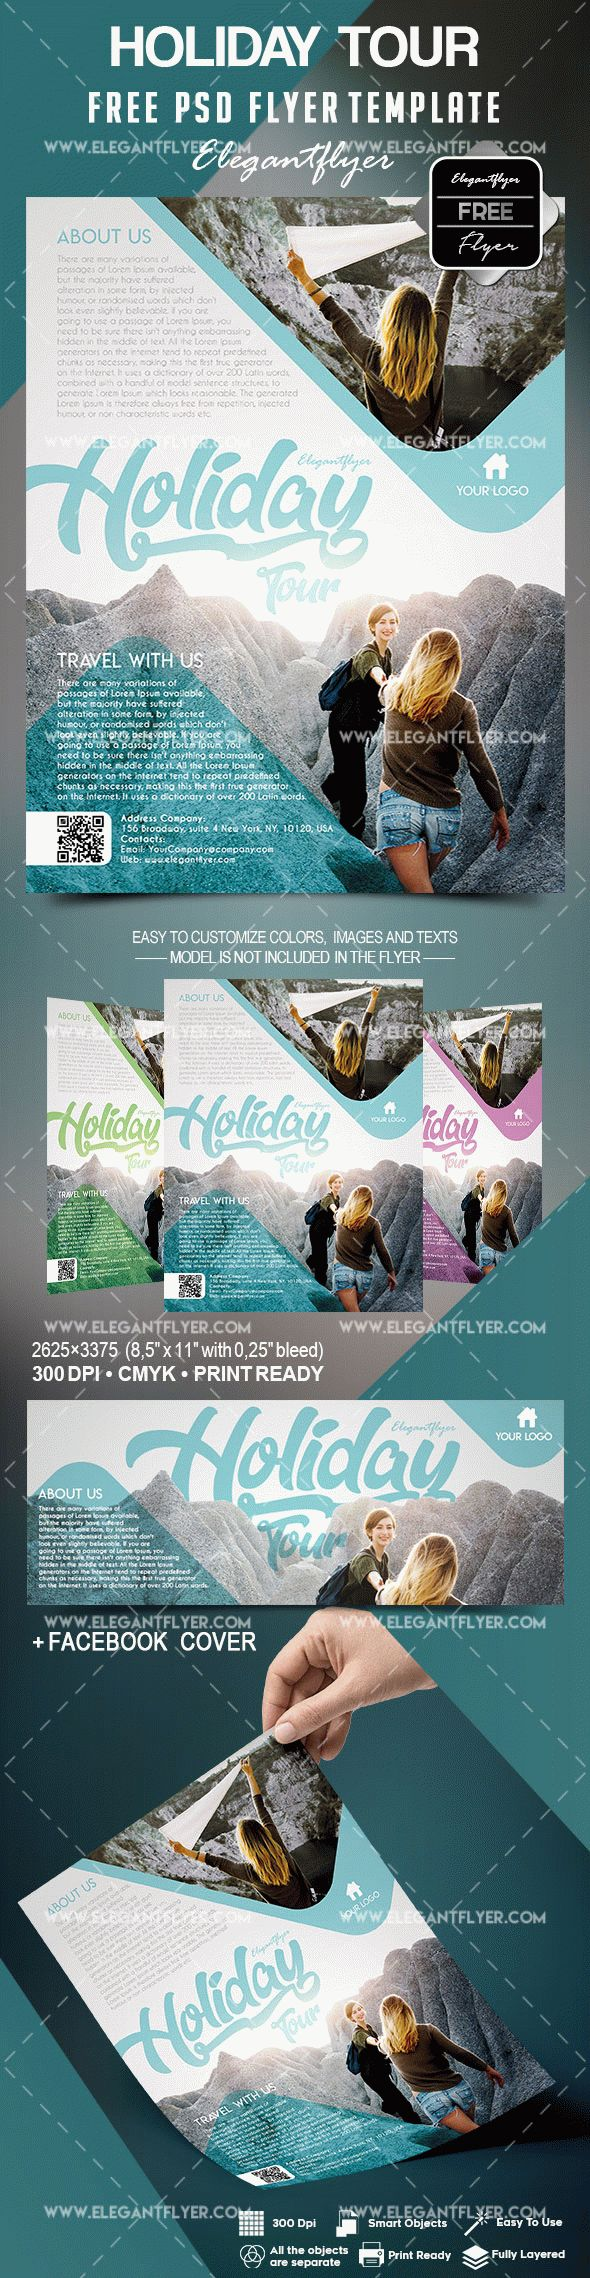 Free Holiday Tour Flyer Template